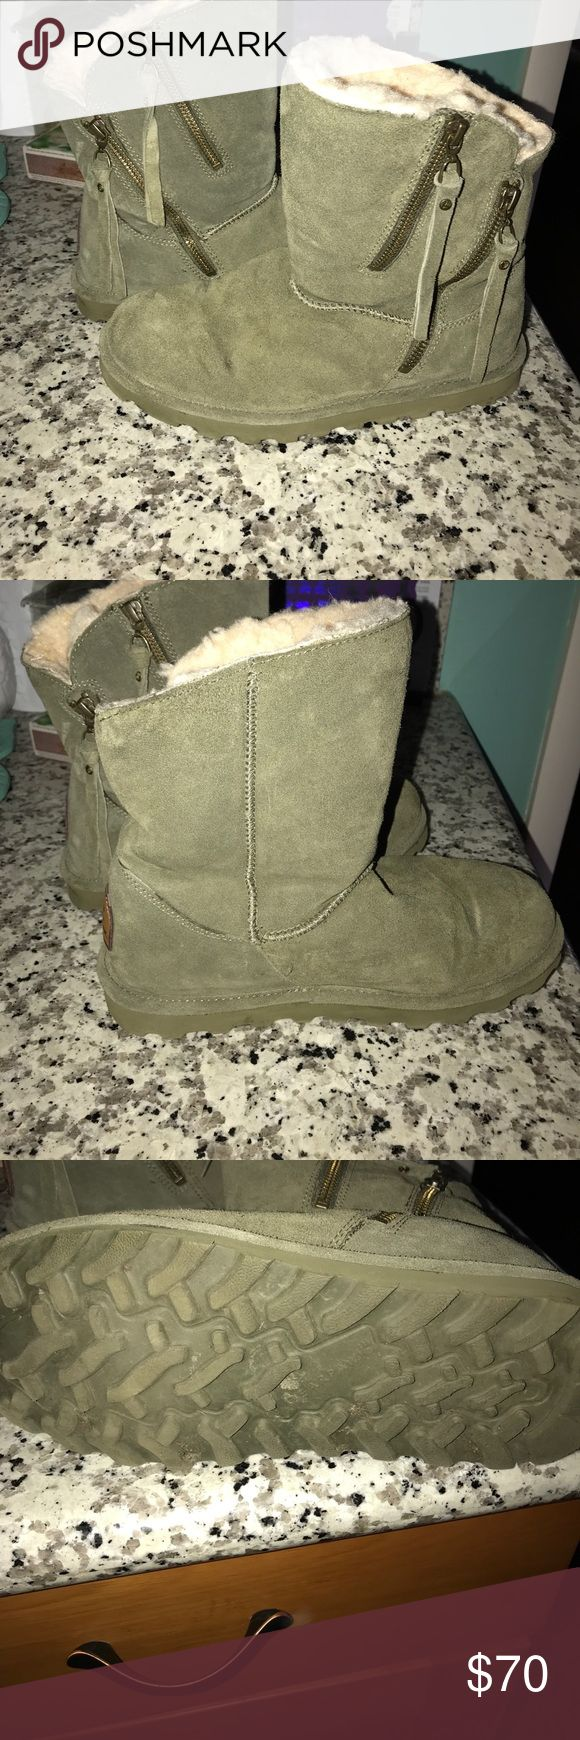 Bear Paw Mimi Zipper Boots Only worn once. Basically brand new. These boots were treated with the Never Wet treatment. Purchased last winter for $90. Pricing based on the condition of the Boots. BearPaw Shoes Winter & Rain Boots